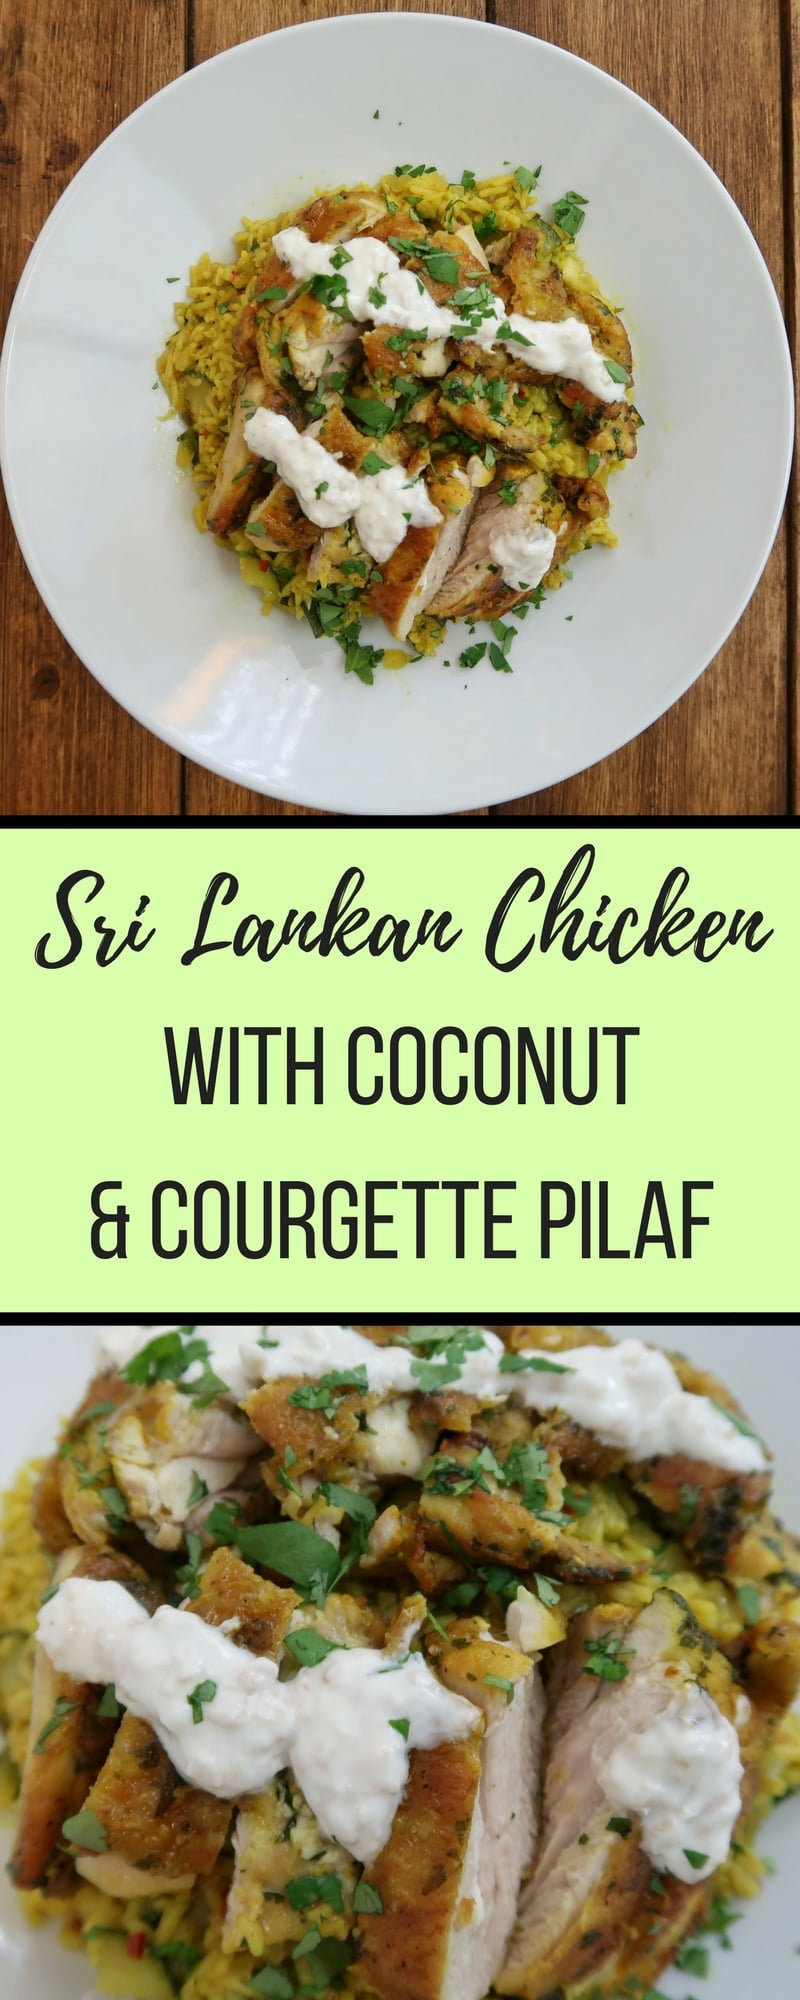 Sri Lankan Chicken with Coconut & Courgette Pilaf - a delicious recipe for those who like trying new and exotic foods. Succulent and spicey chicken matched with a vegetable pilaf and yogurt dressing.